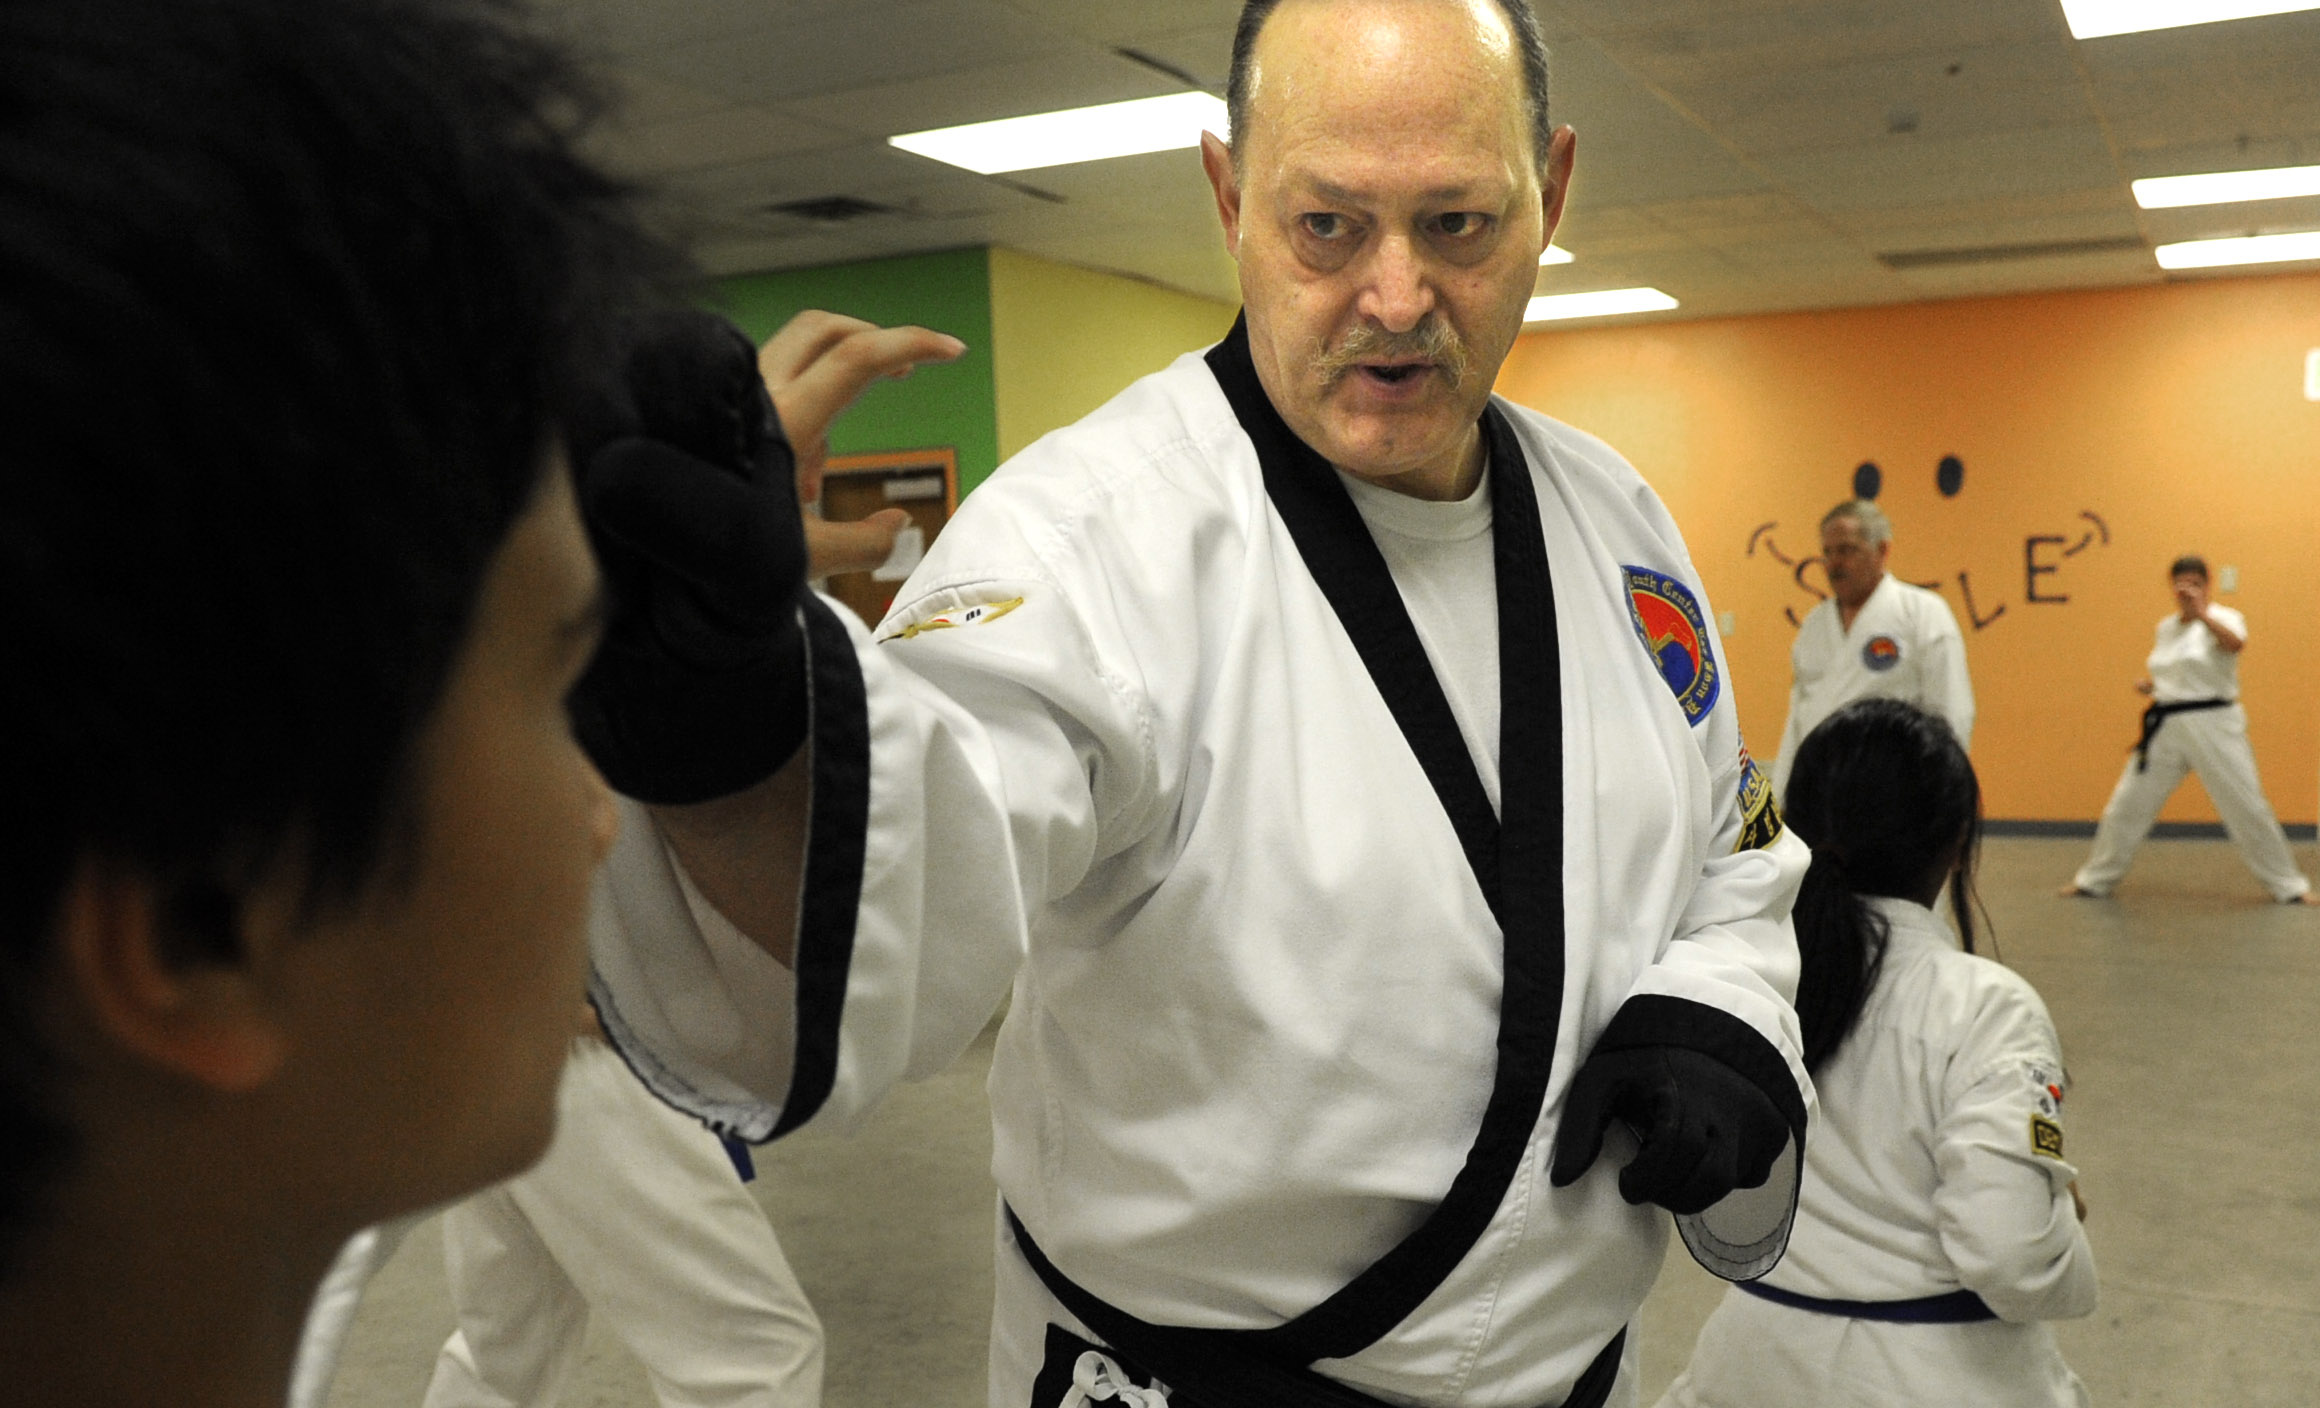 Students pay for taekwondo lessons with monthly food